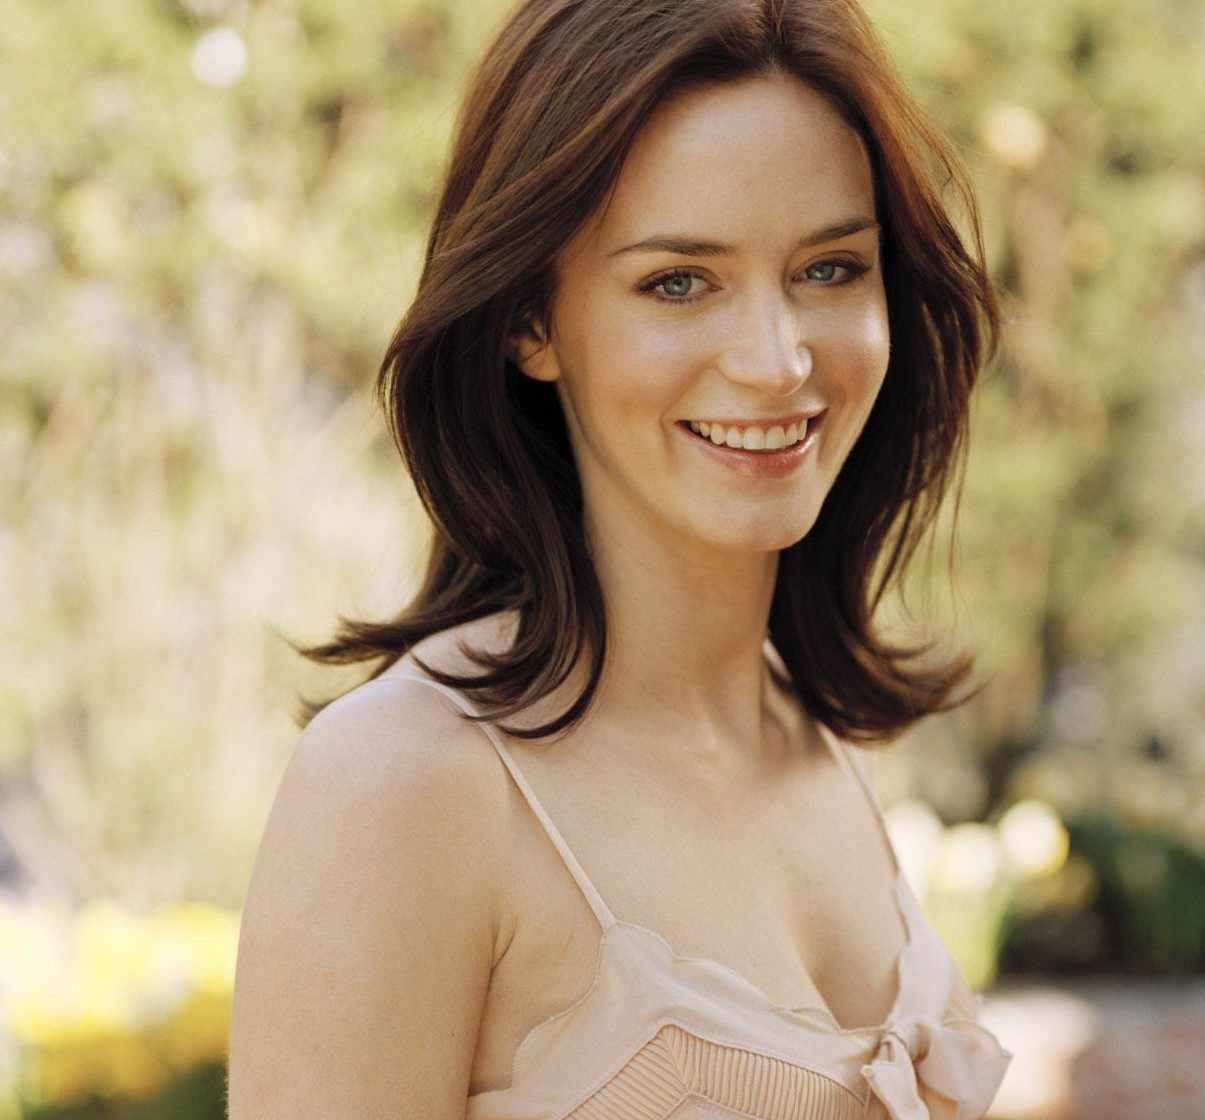 Emily Blunt (born 1983 (naturalized American citizen)